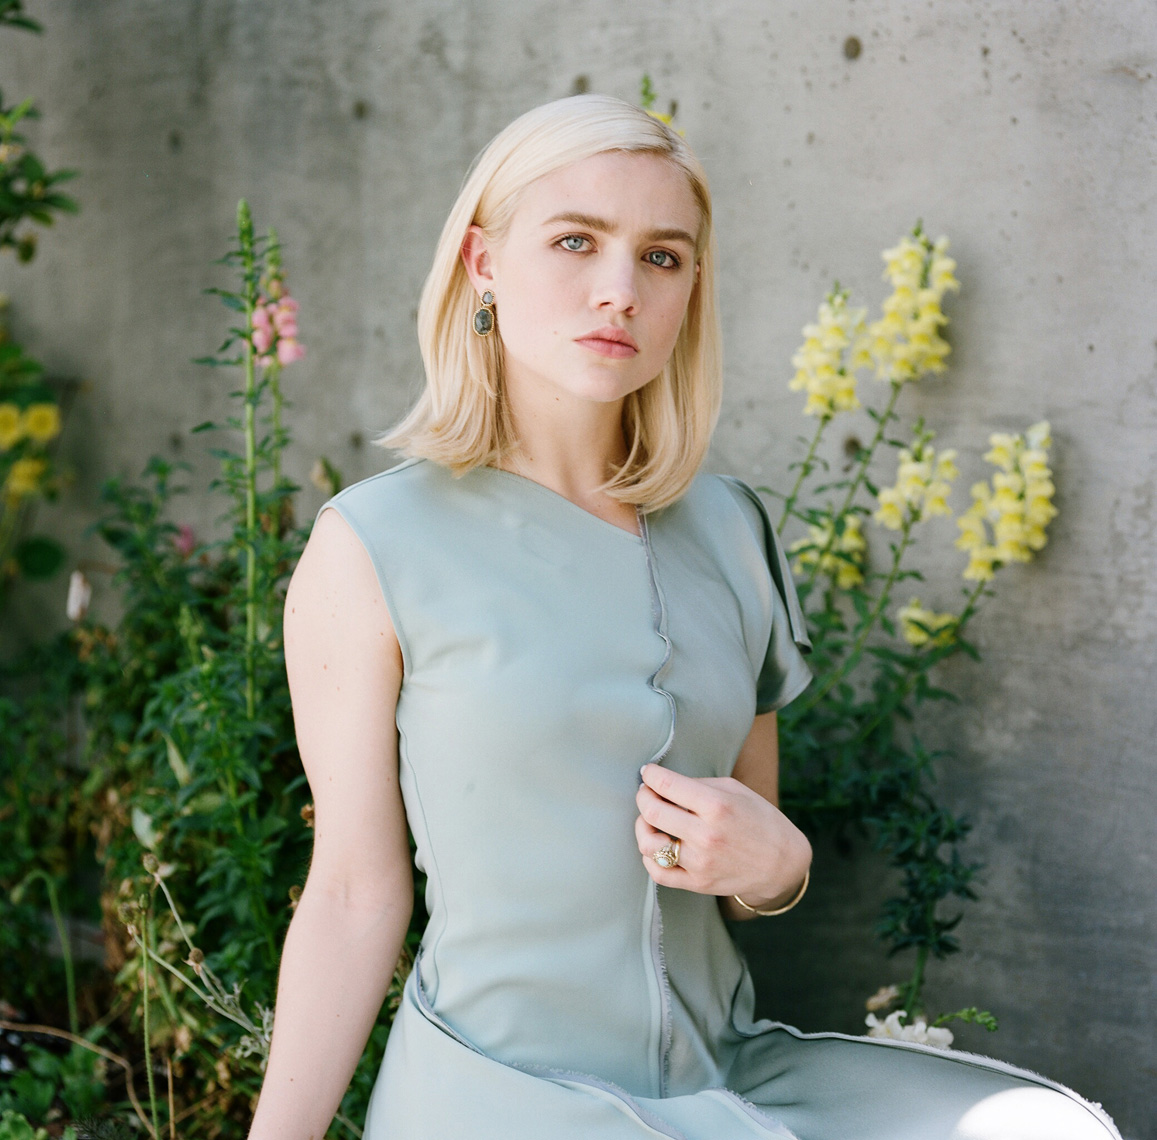 050418THR_MaddieHasson_FILM_10